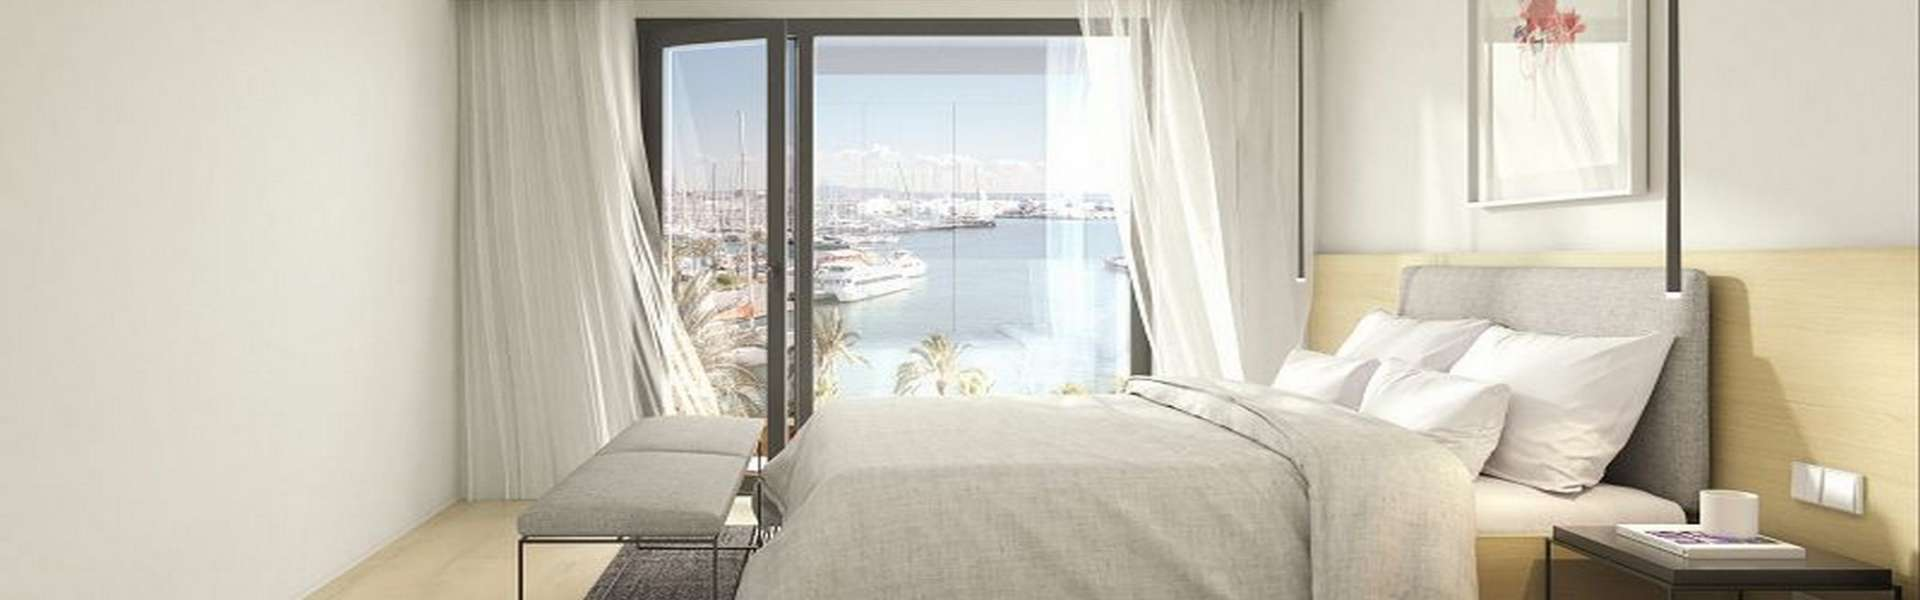 Palma - Luxuriöses Apartment am Paseo Marítimo